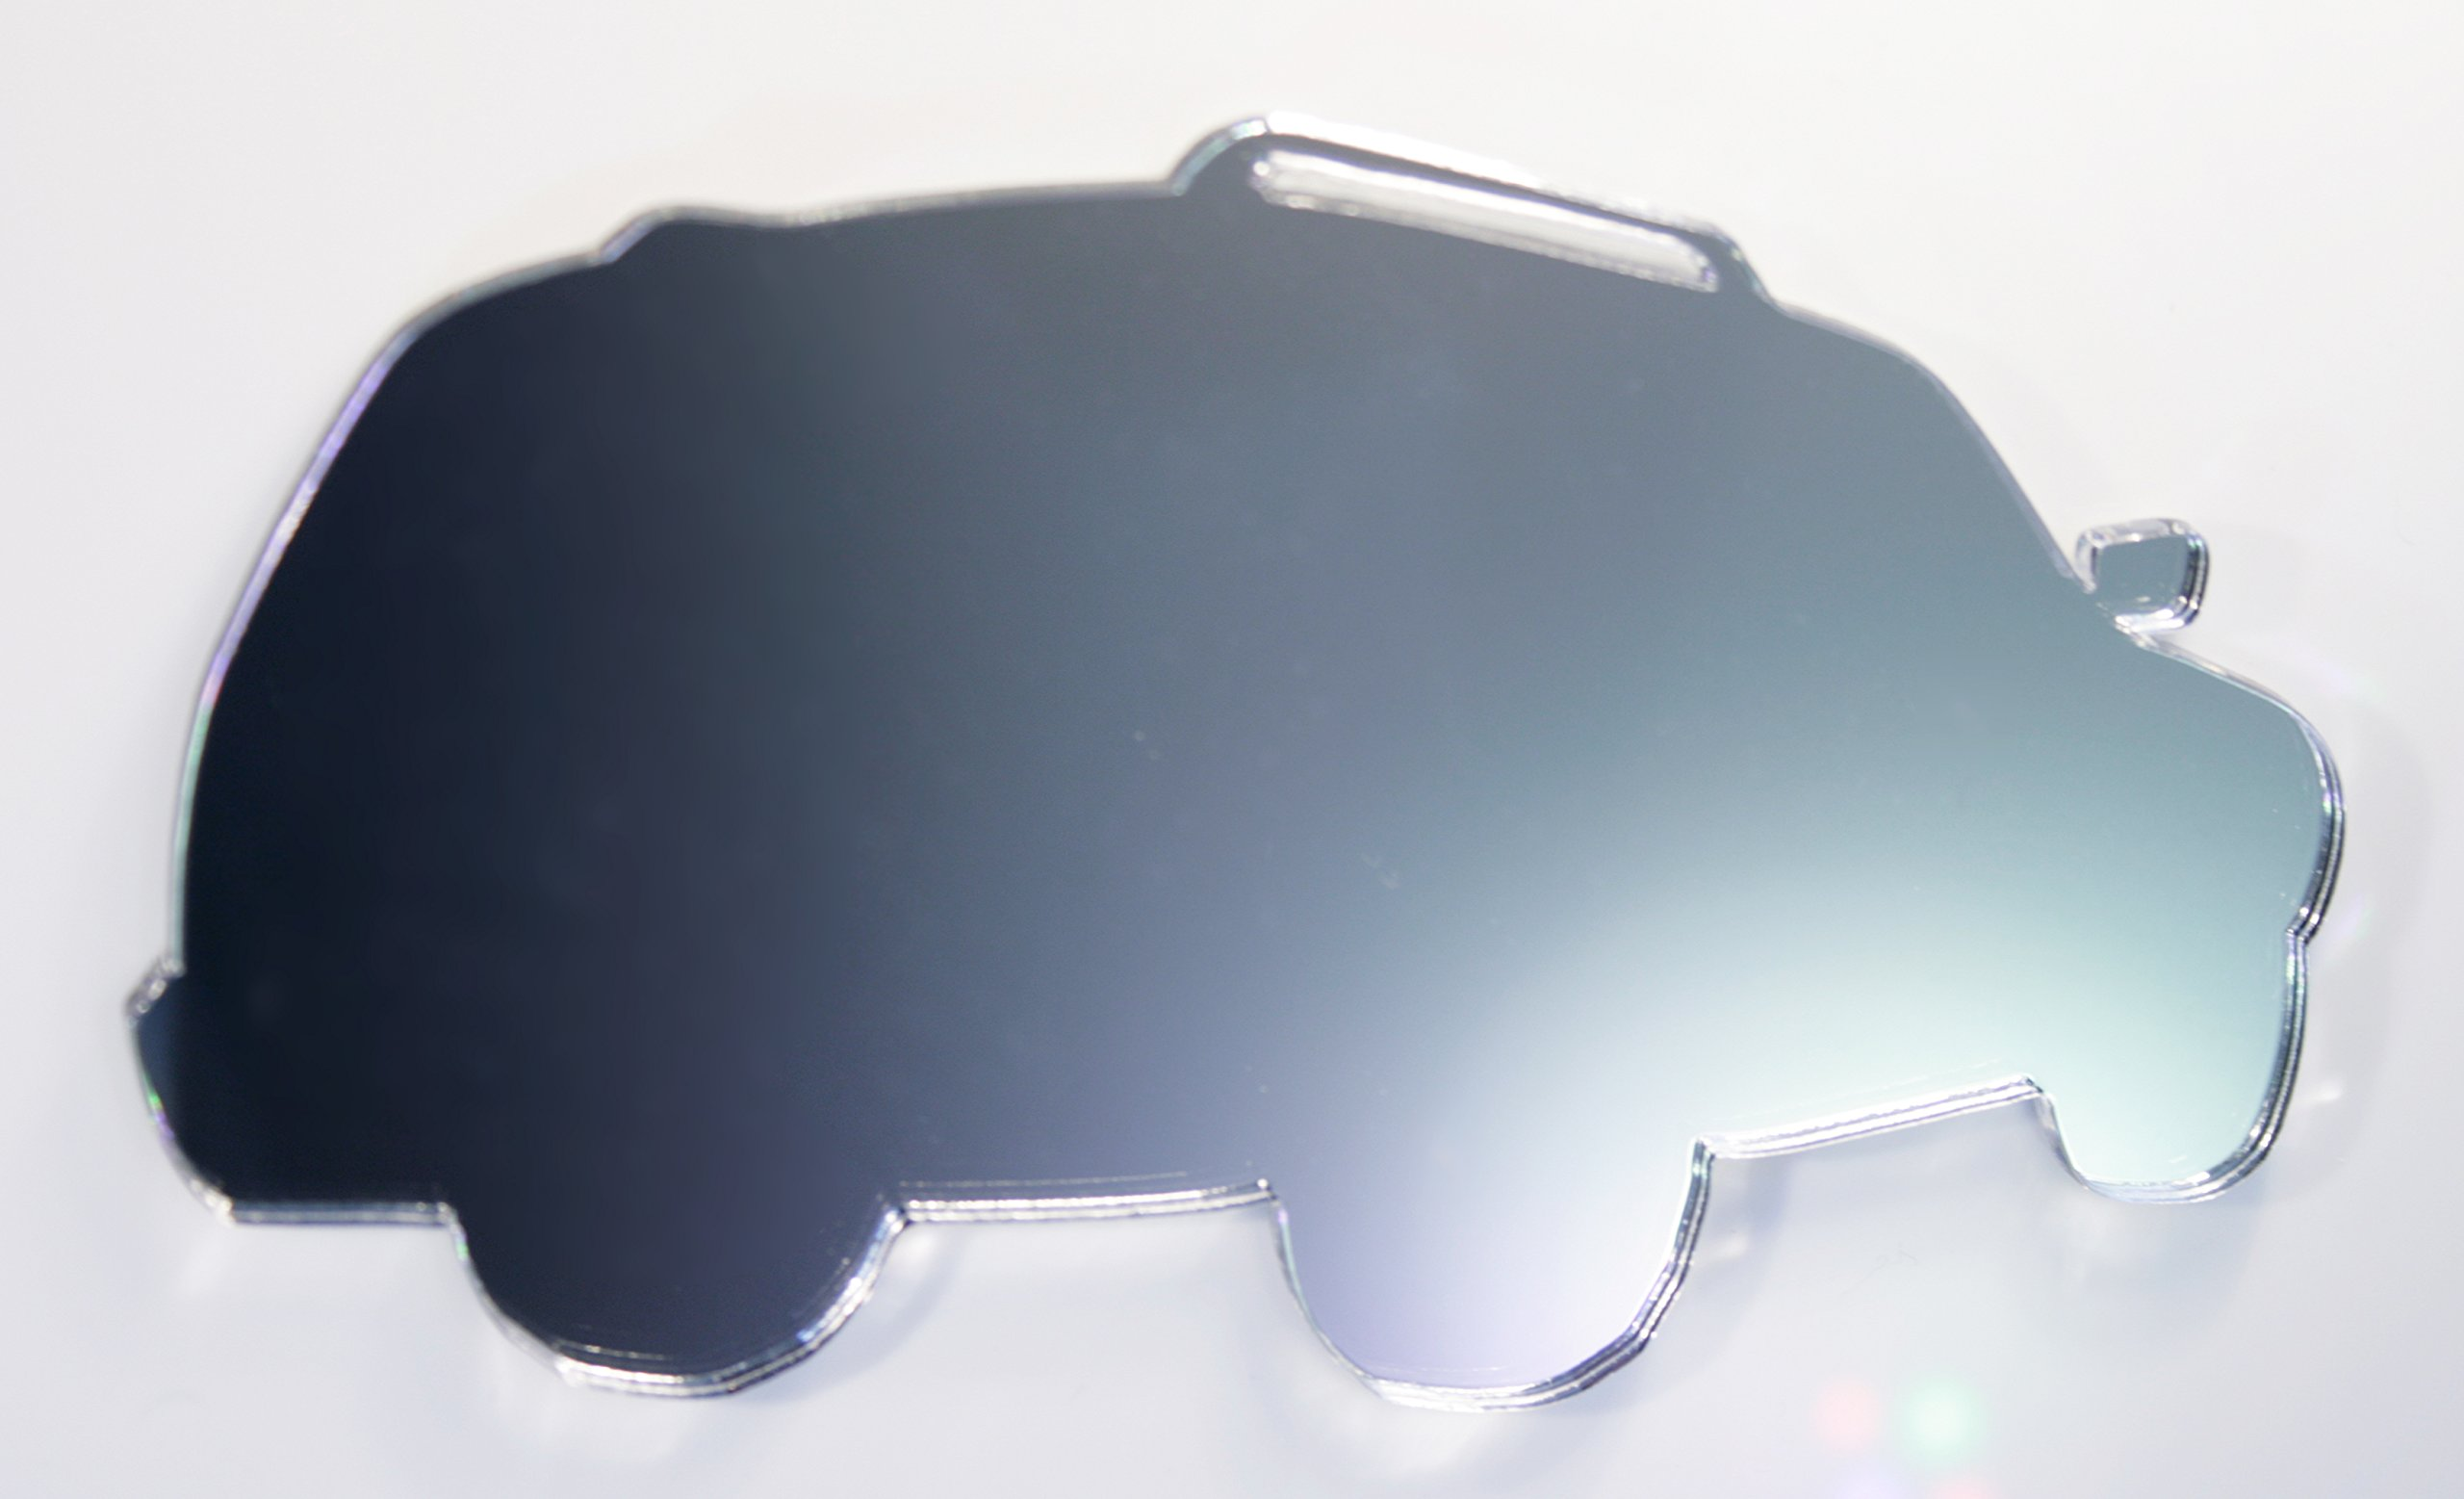 Car Mirror - Available in various sizes, including sets for crafting kits - Set of 10 (5cm each)